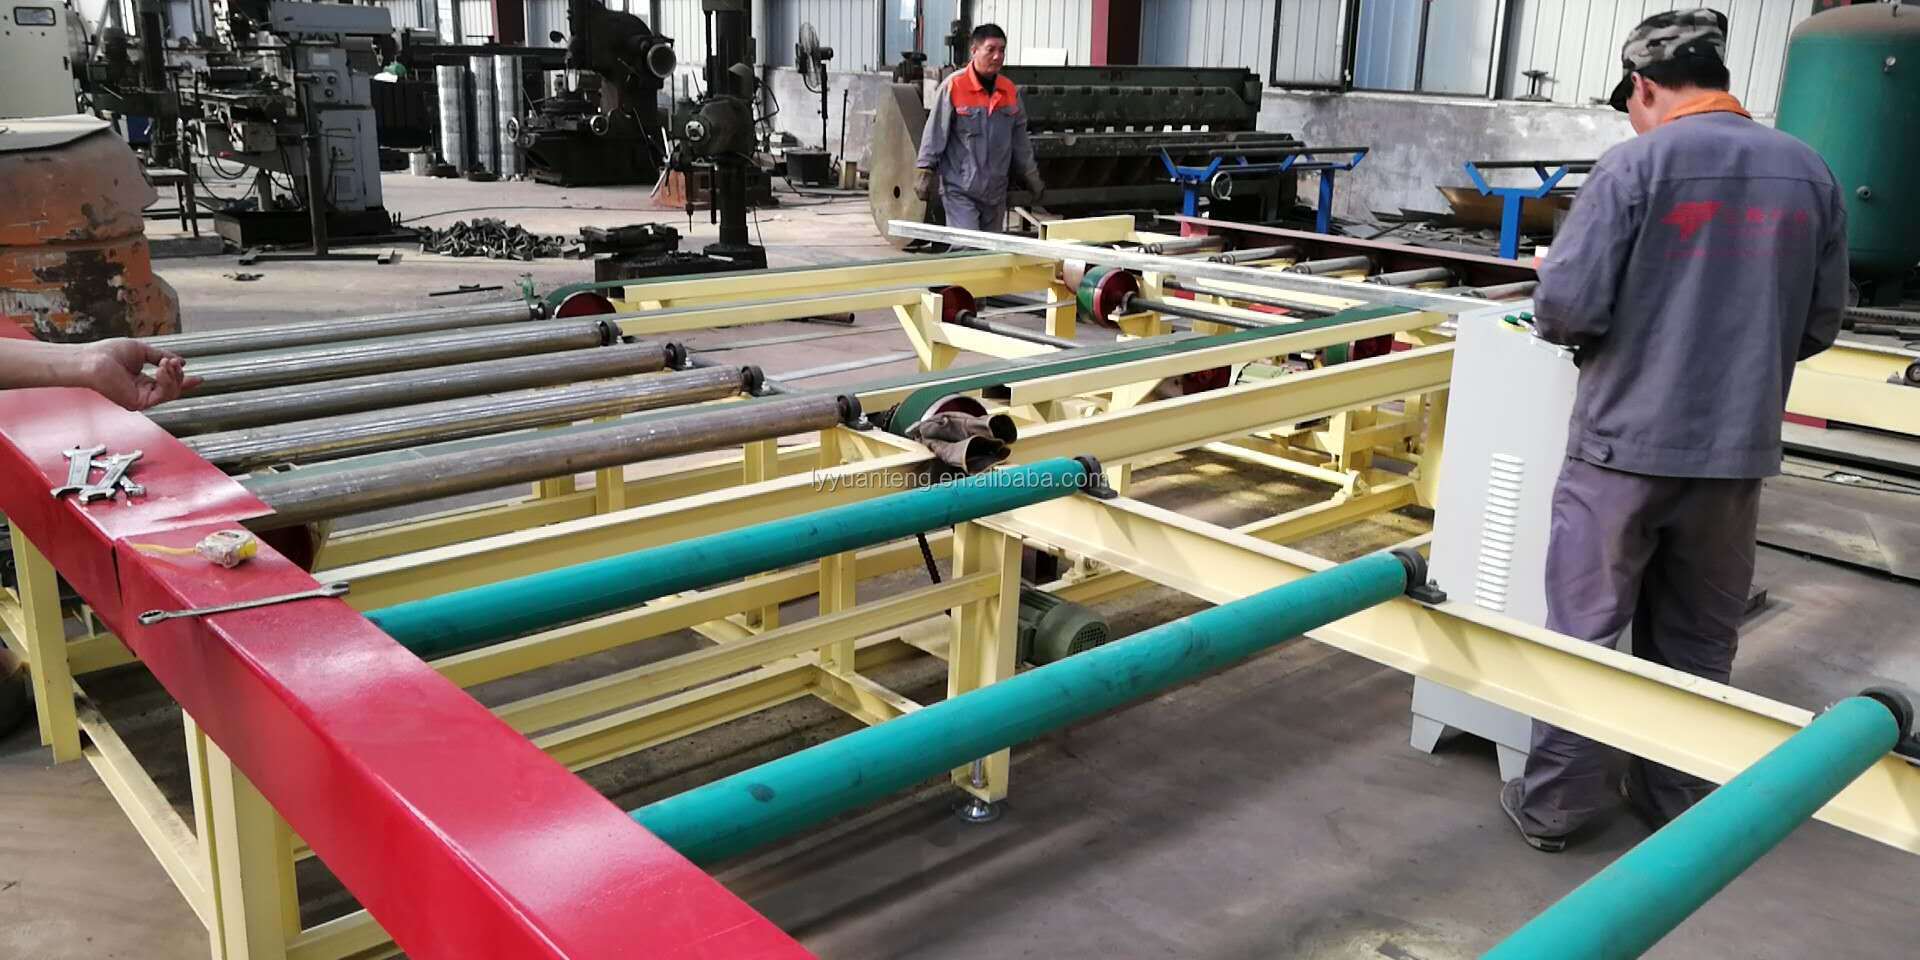 Gypsum cornice machine 3000 pcs one day